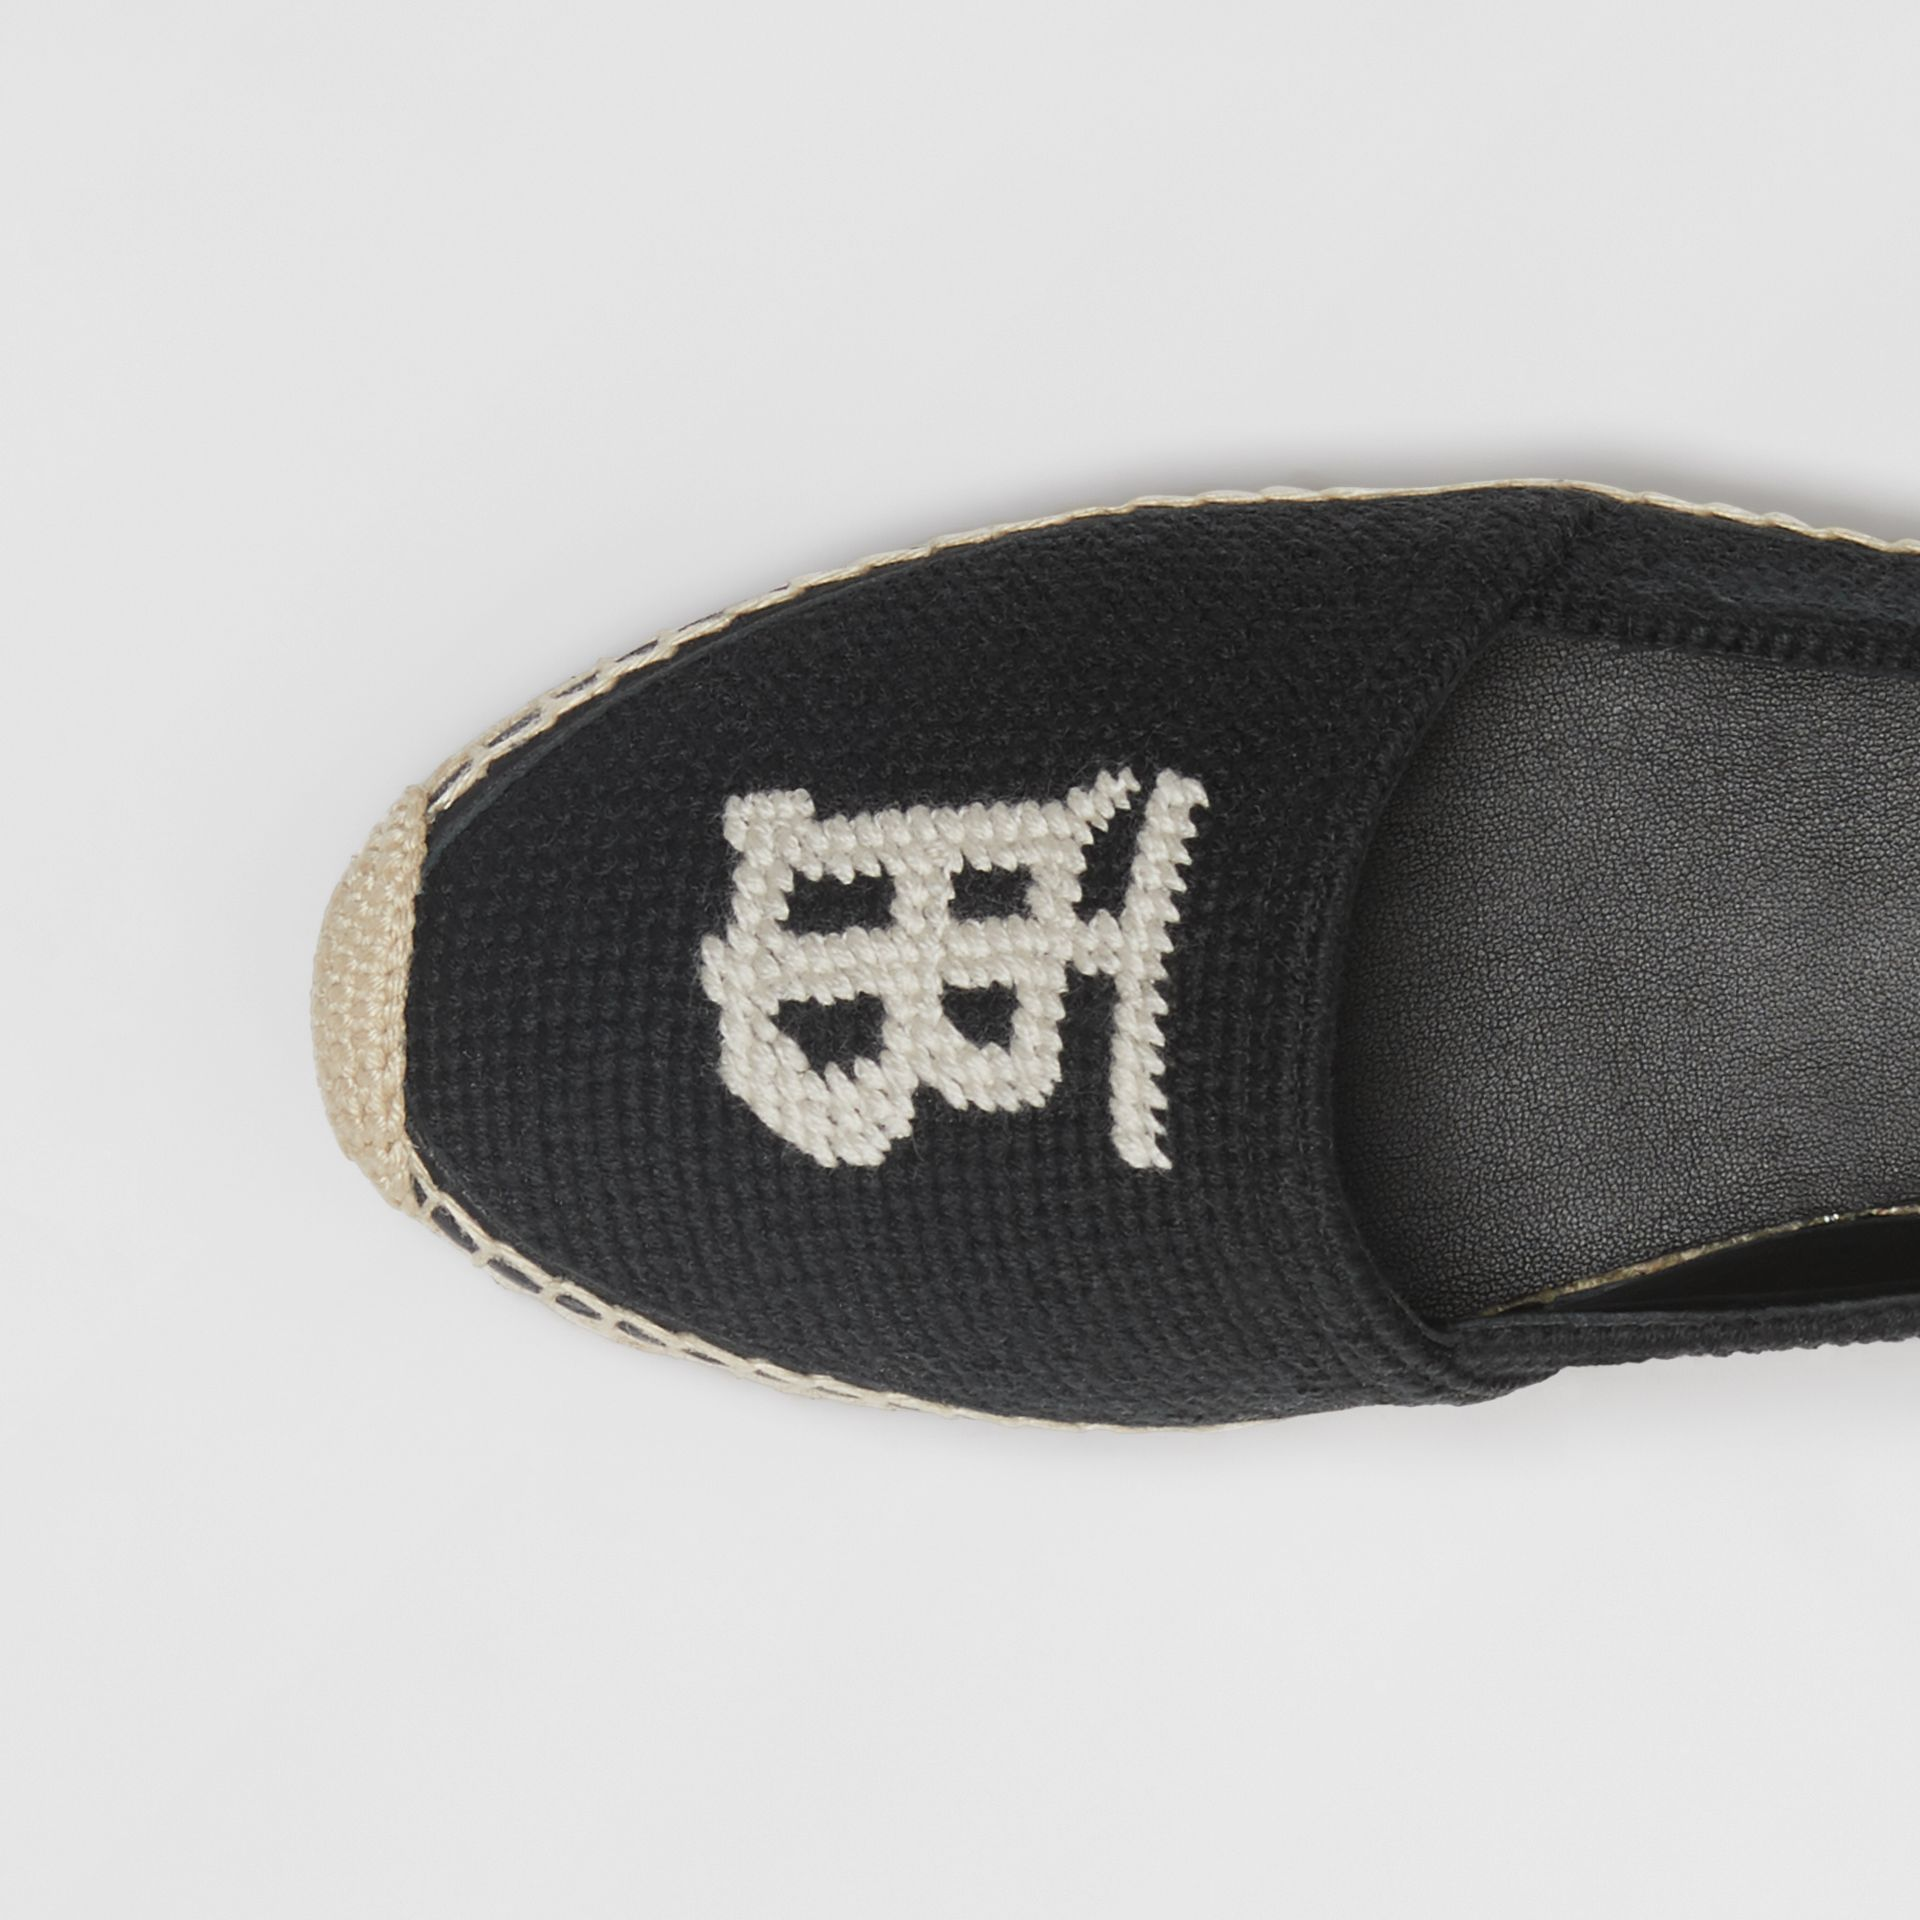 Monogram Motif Cotton and Leather Espadrilles in Black/ecru - Women | Burberry Australia - gallery image 1